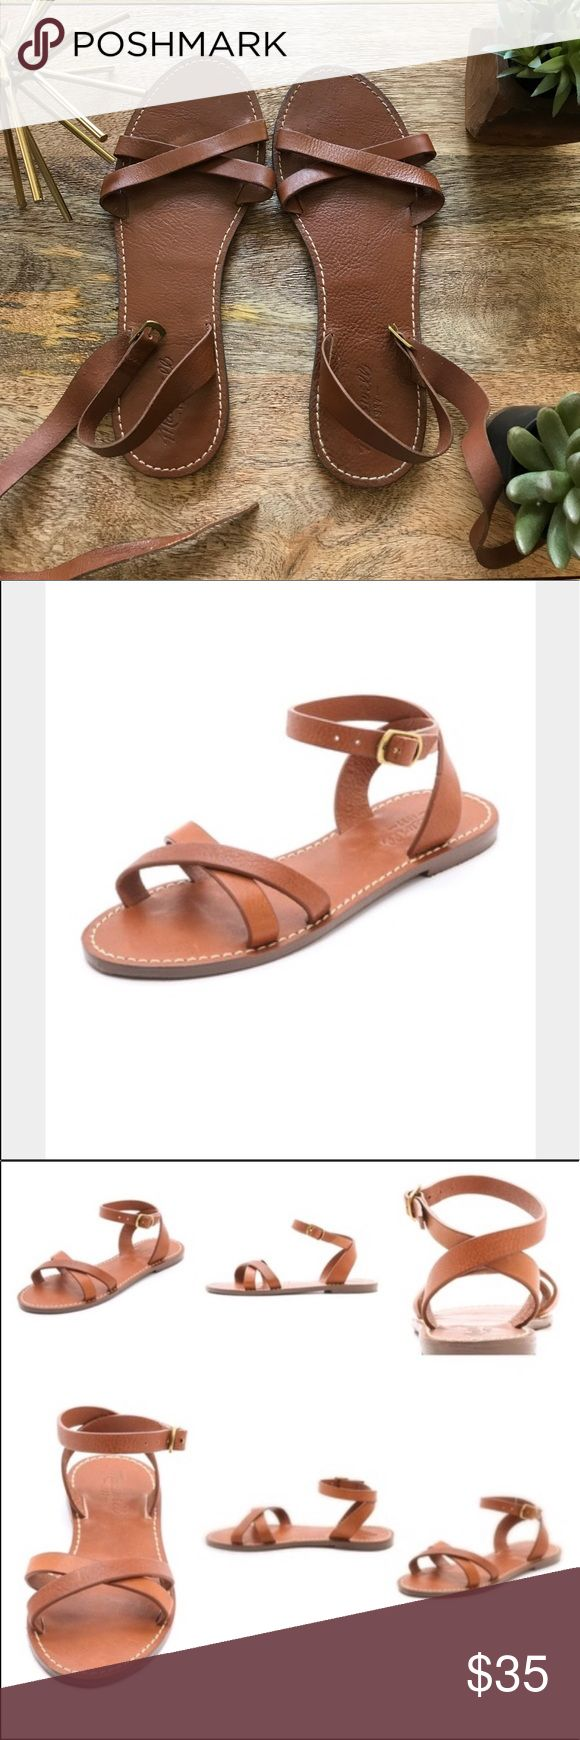 Madewell Brown Sandal Madewell Brown Leather Sandal in good condition. Size 10 Super comfy leather. Madewell Shoes Sandals